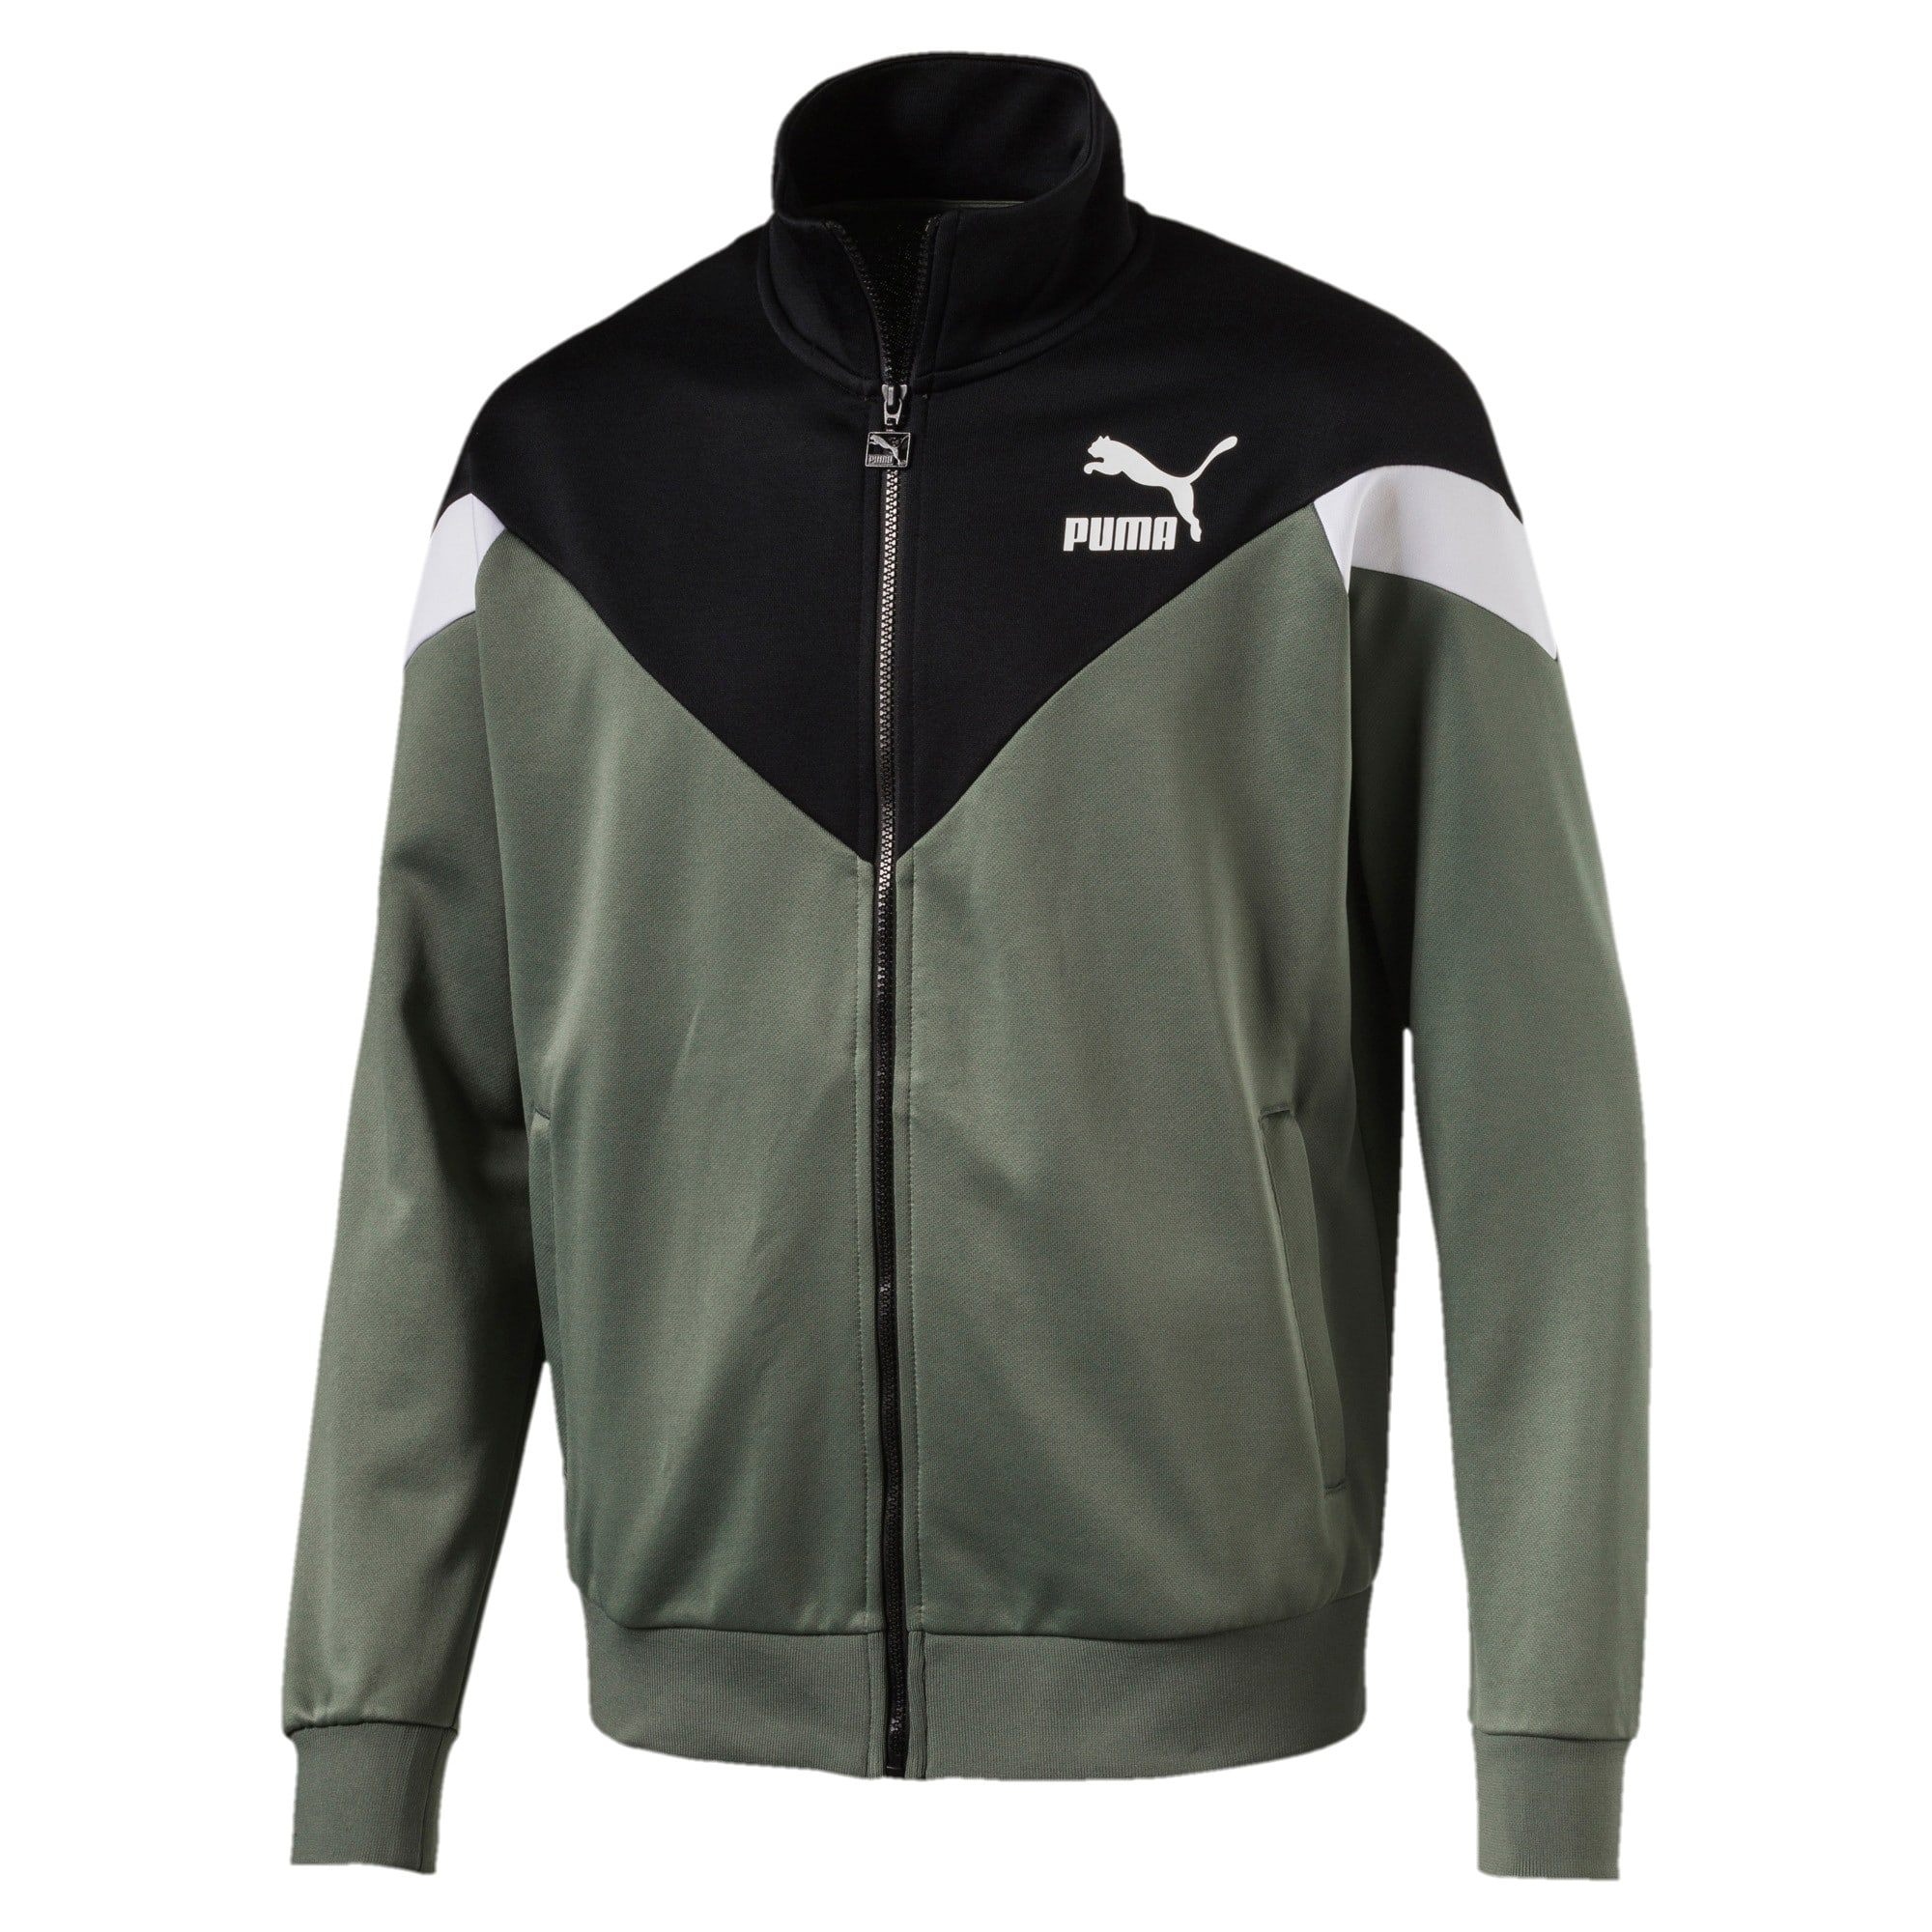 Thumbnail 1 of MCS Men's Track Jacket, Laurel Wreath, medium-IND